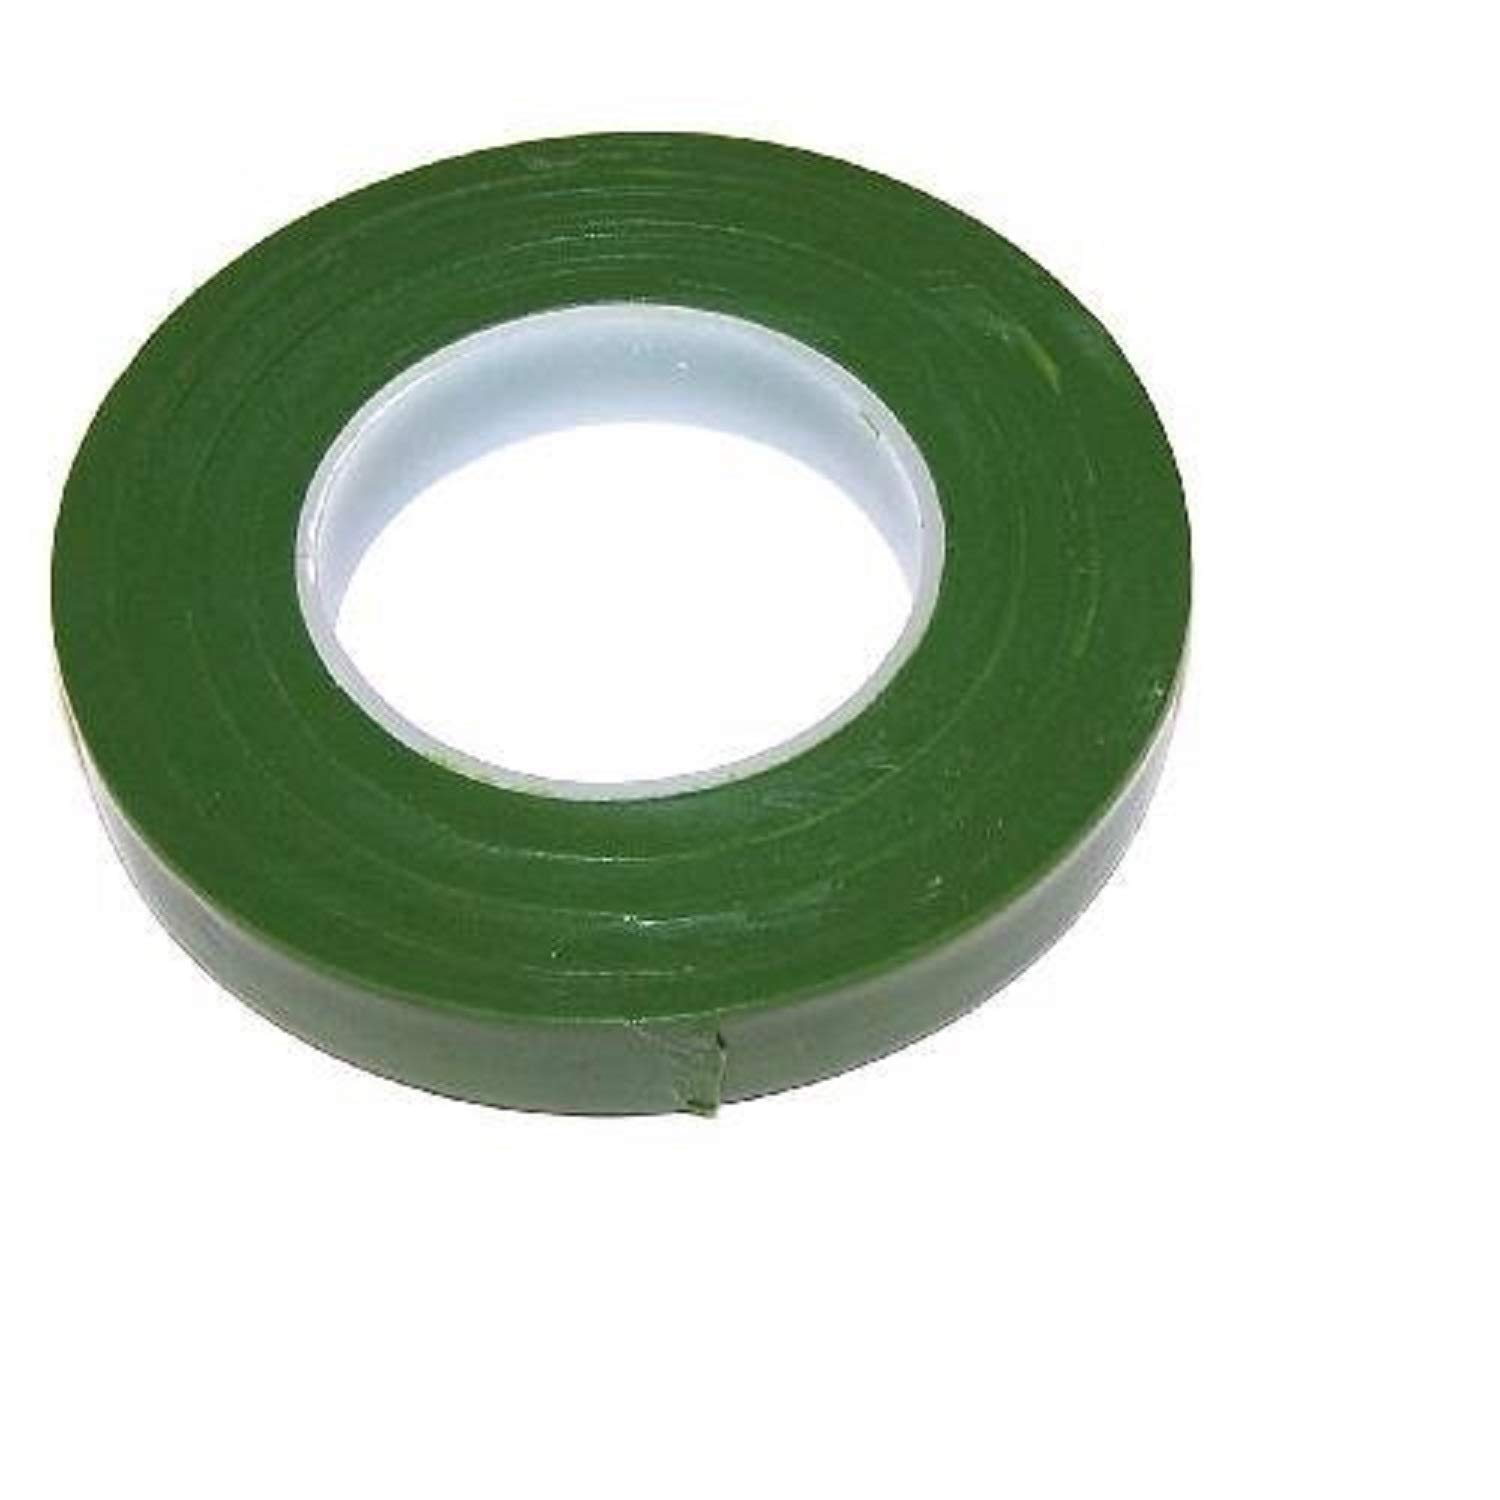 One Parafilm Roll - Waterproof plastic green florist stem tape for floral flower crafts by floral supplies Smithers Oasis 6155